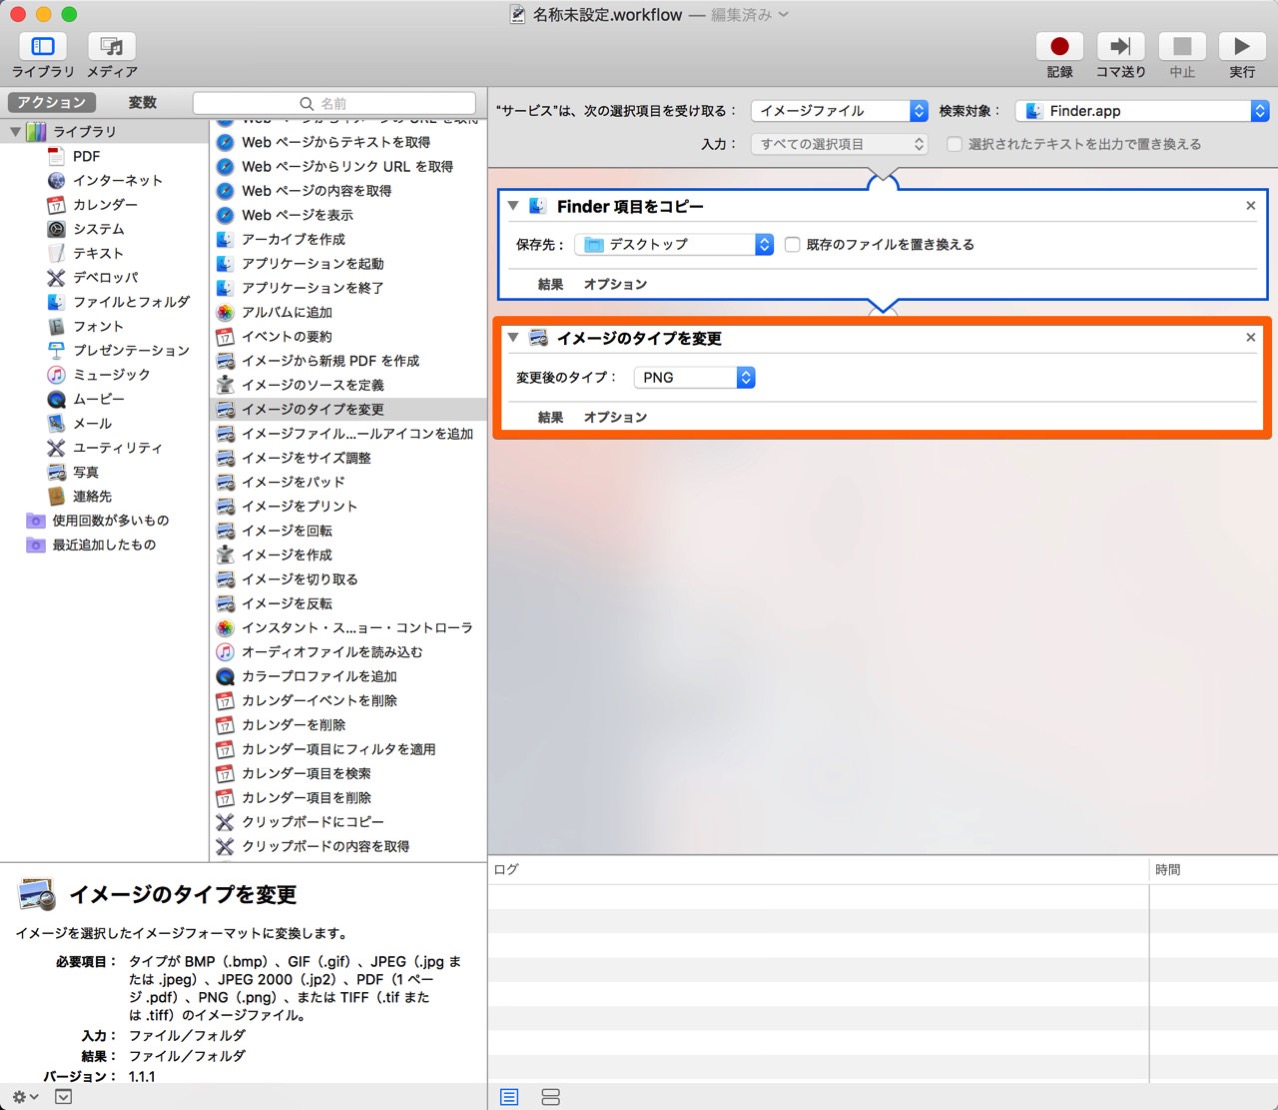 How to change the file format of the image in automator8